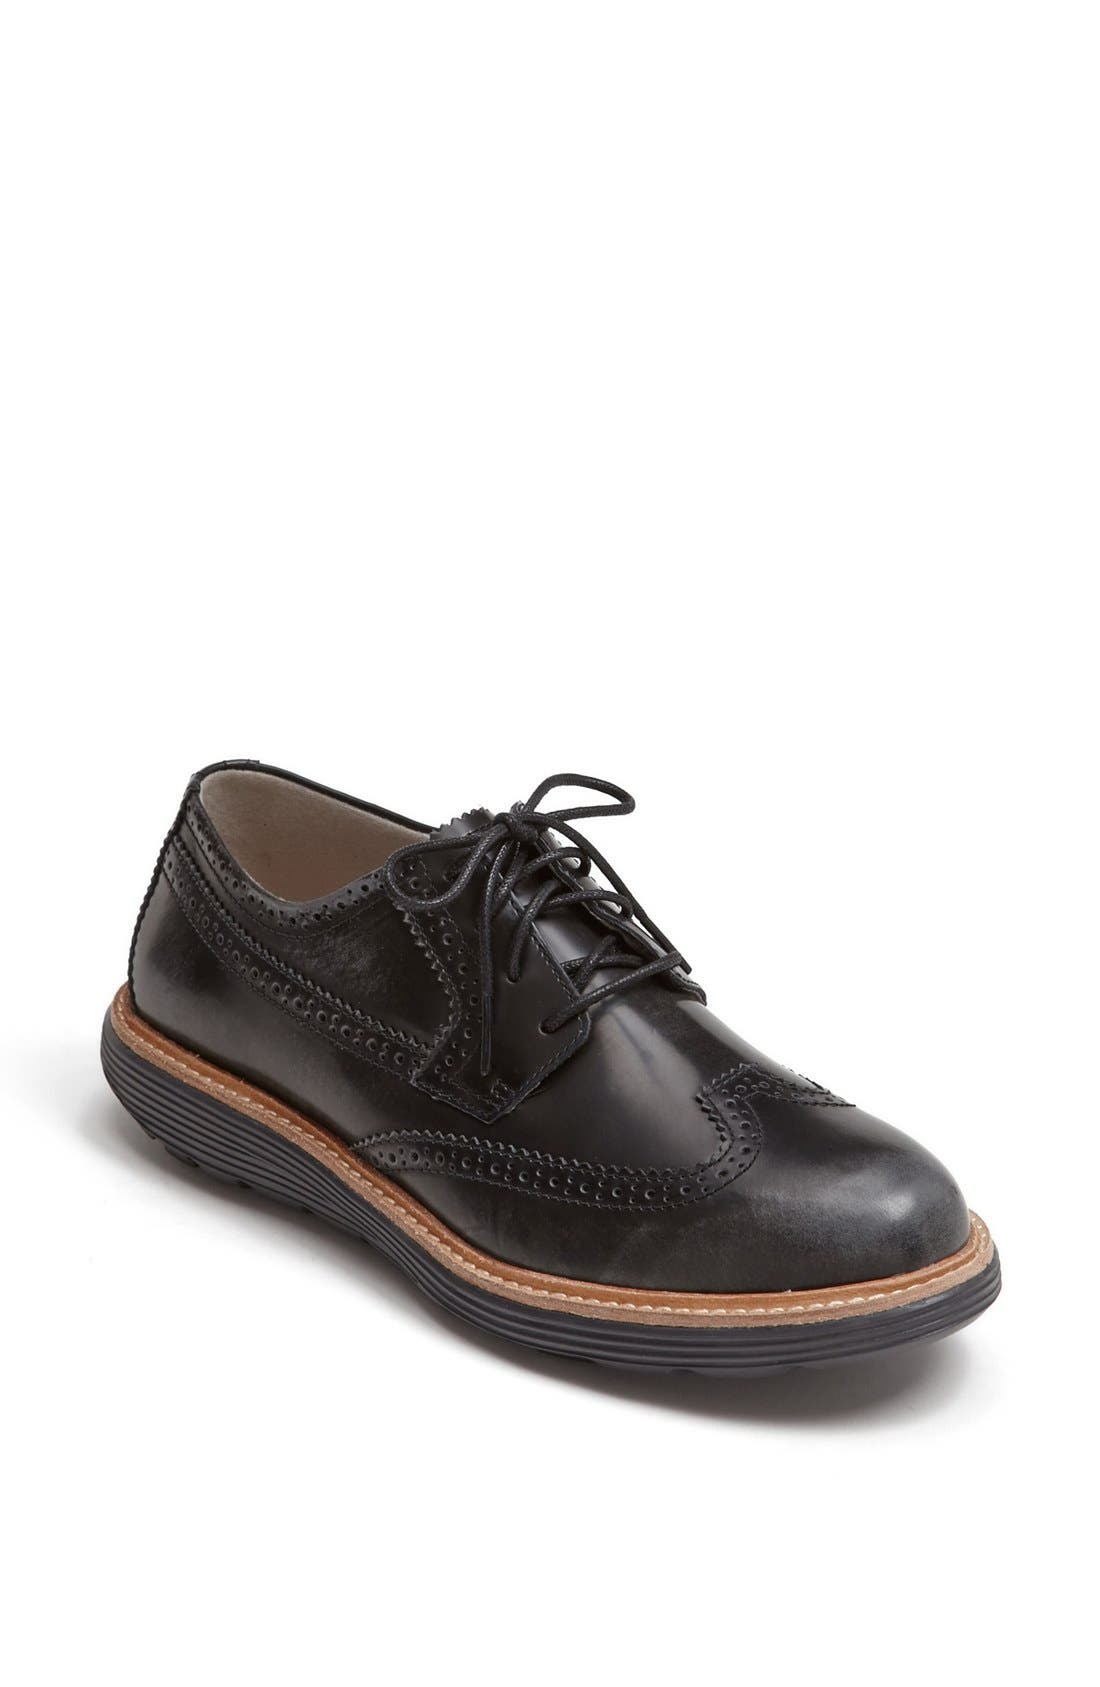 Main Image - Rockport 'truWALKzero - Welt' Oxford